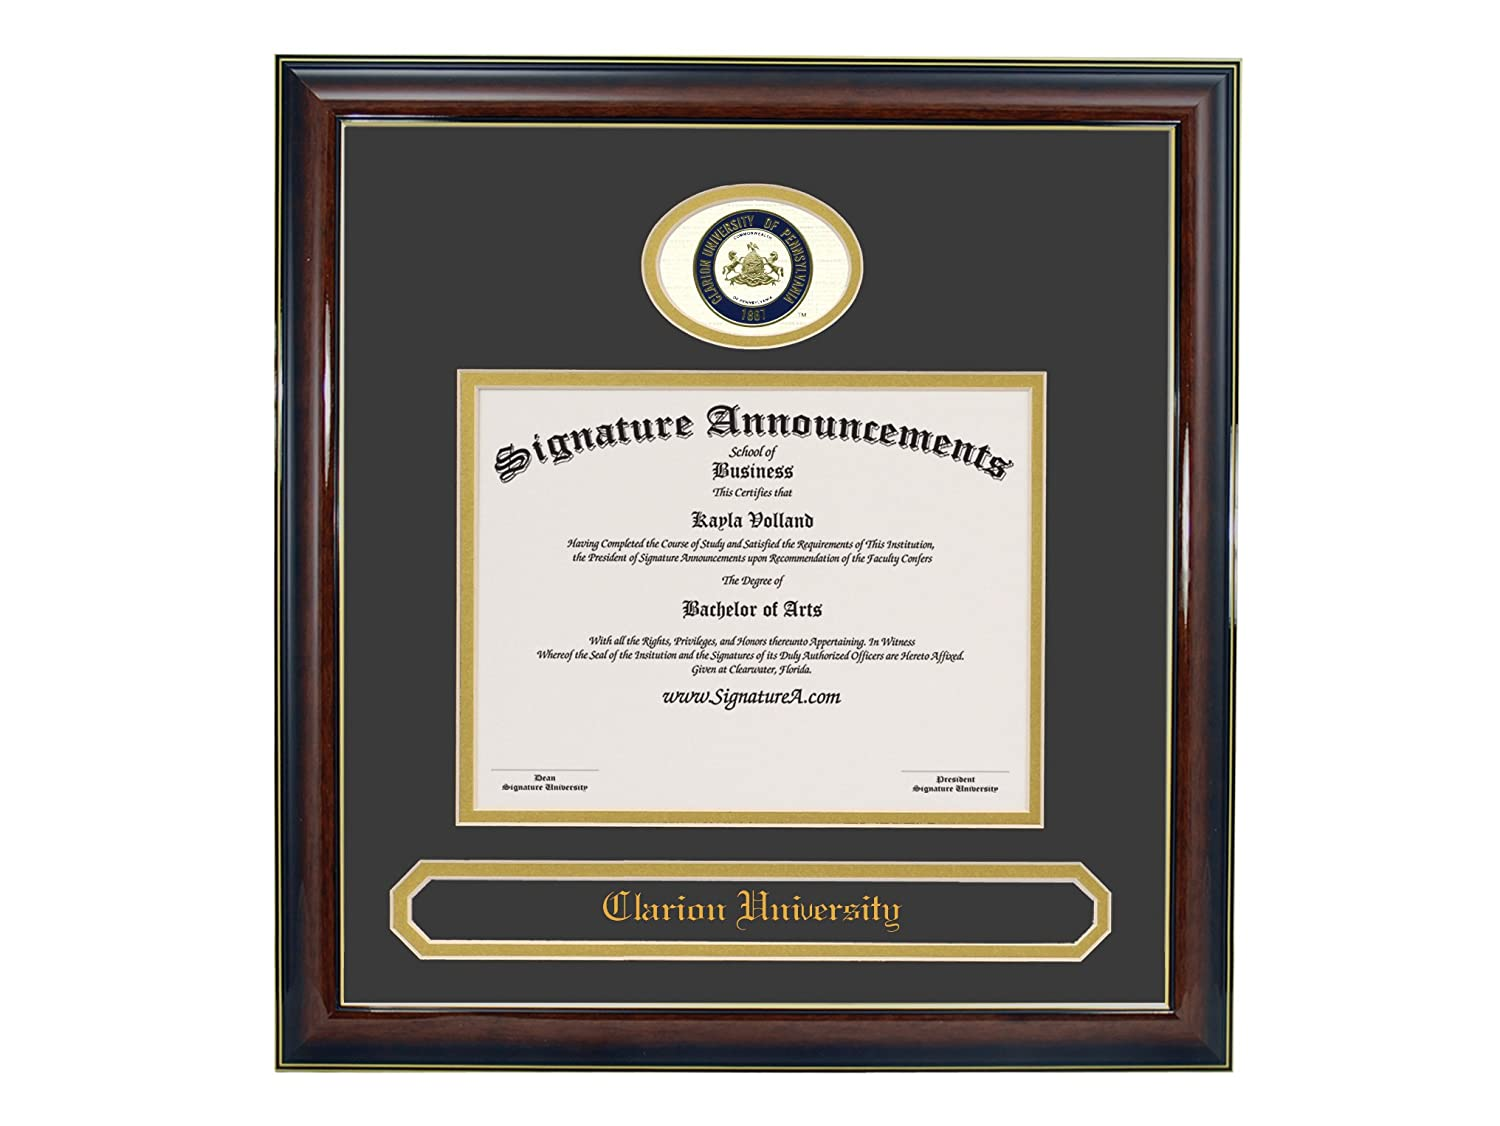 Gold Accent Gloss Mahogany Signature Announcements University-of-Dayton Undergraduate Sculpted Foil Seal /& Name Graduation Diploma Frame 16 x 16